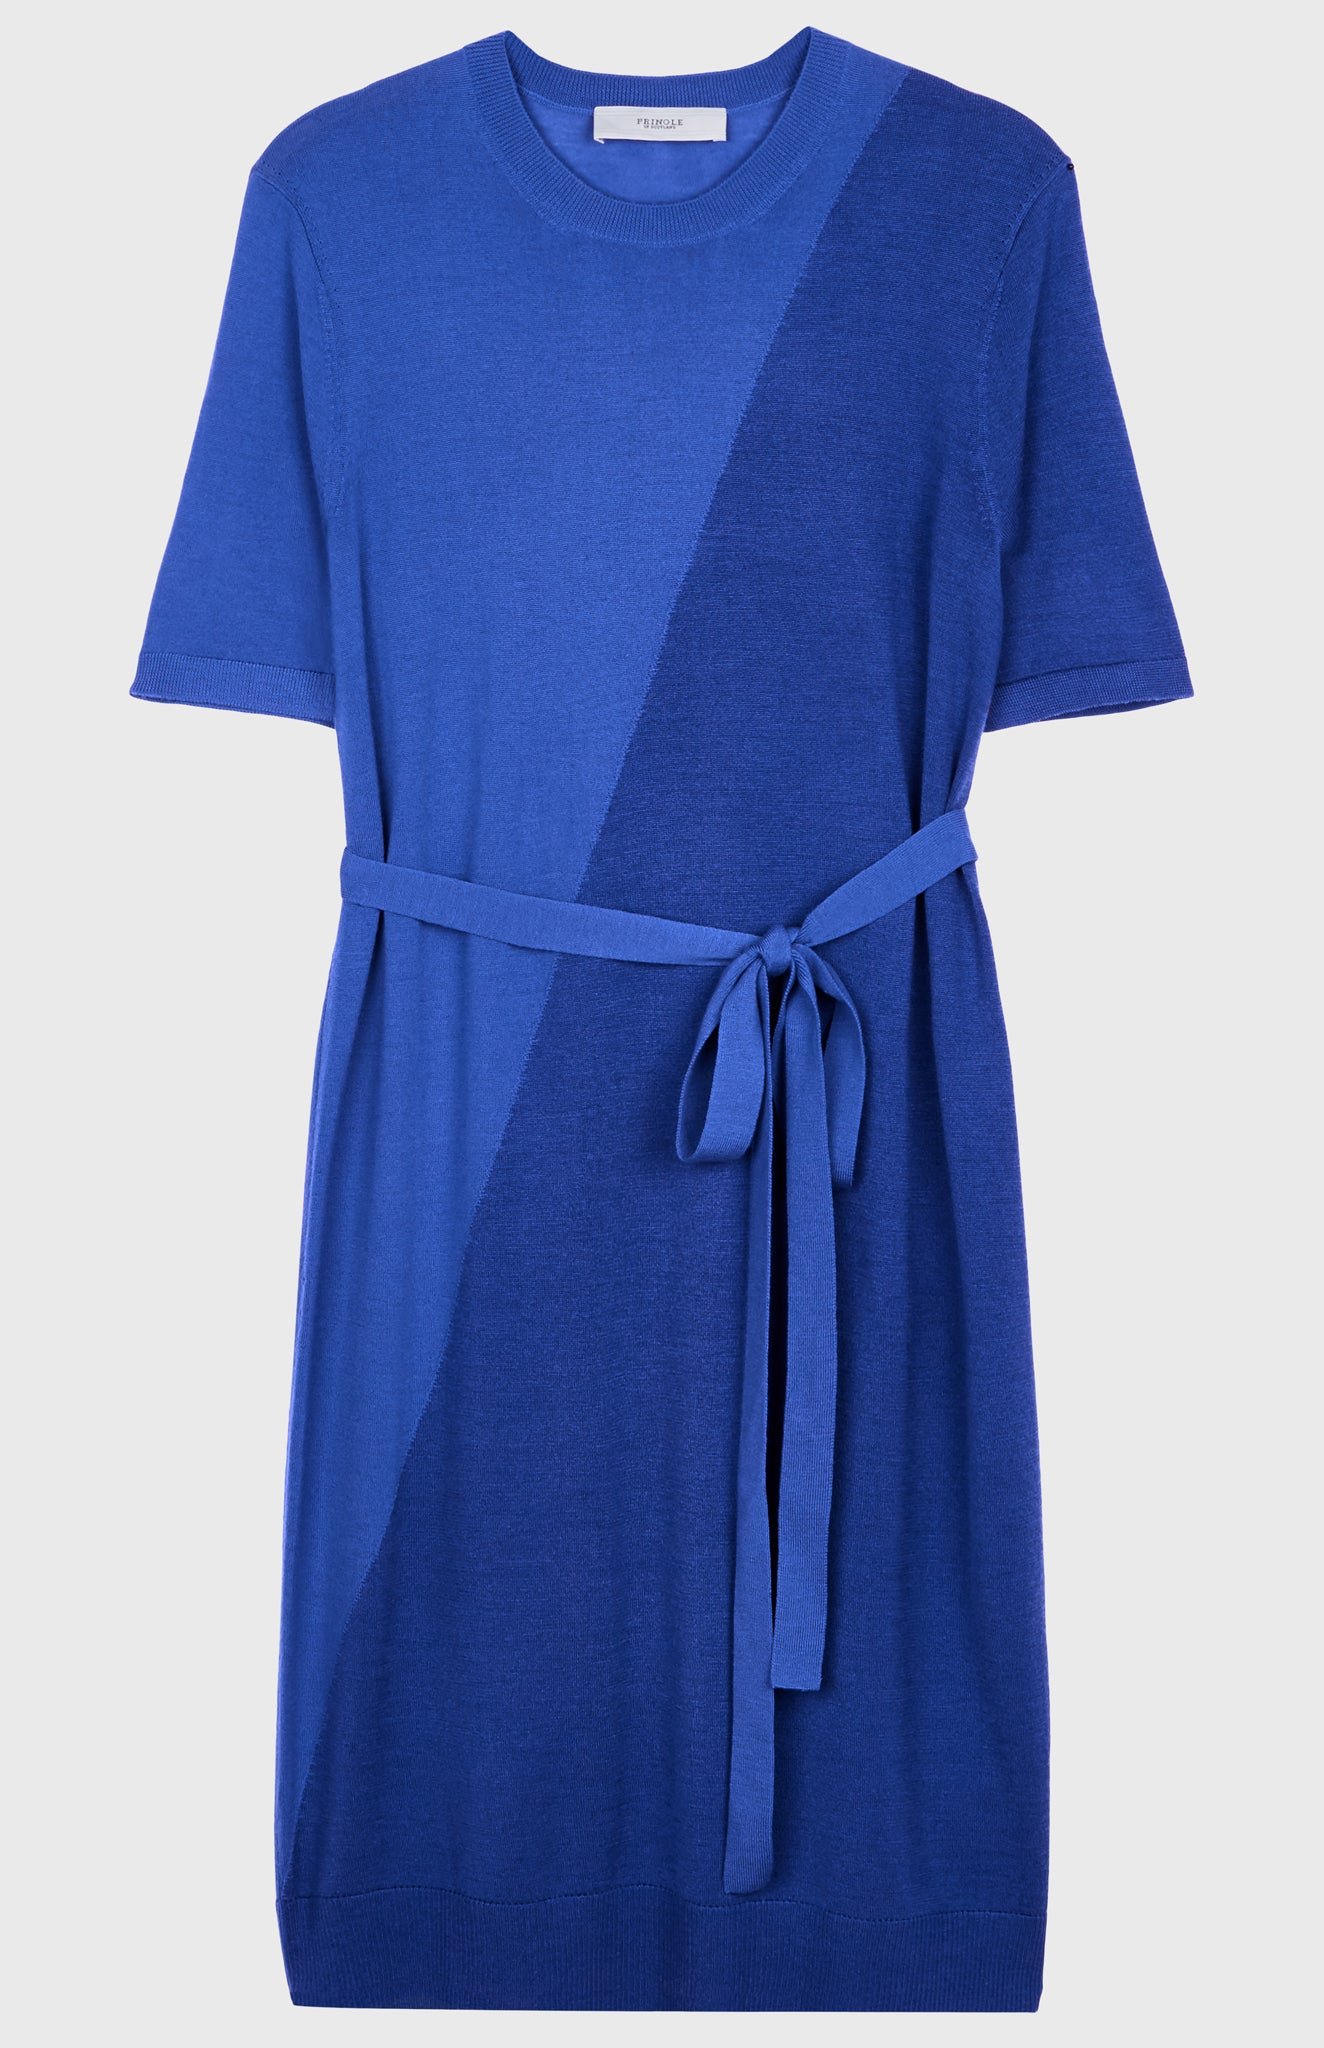 Merino Silk T-shirt Dress In Bright Blue